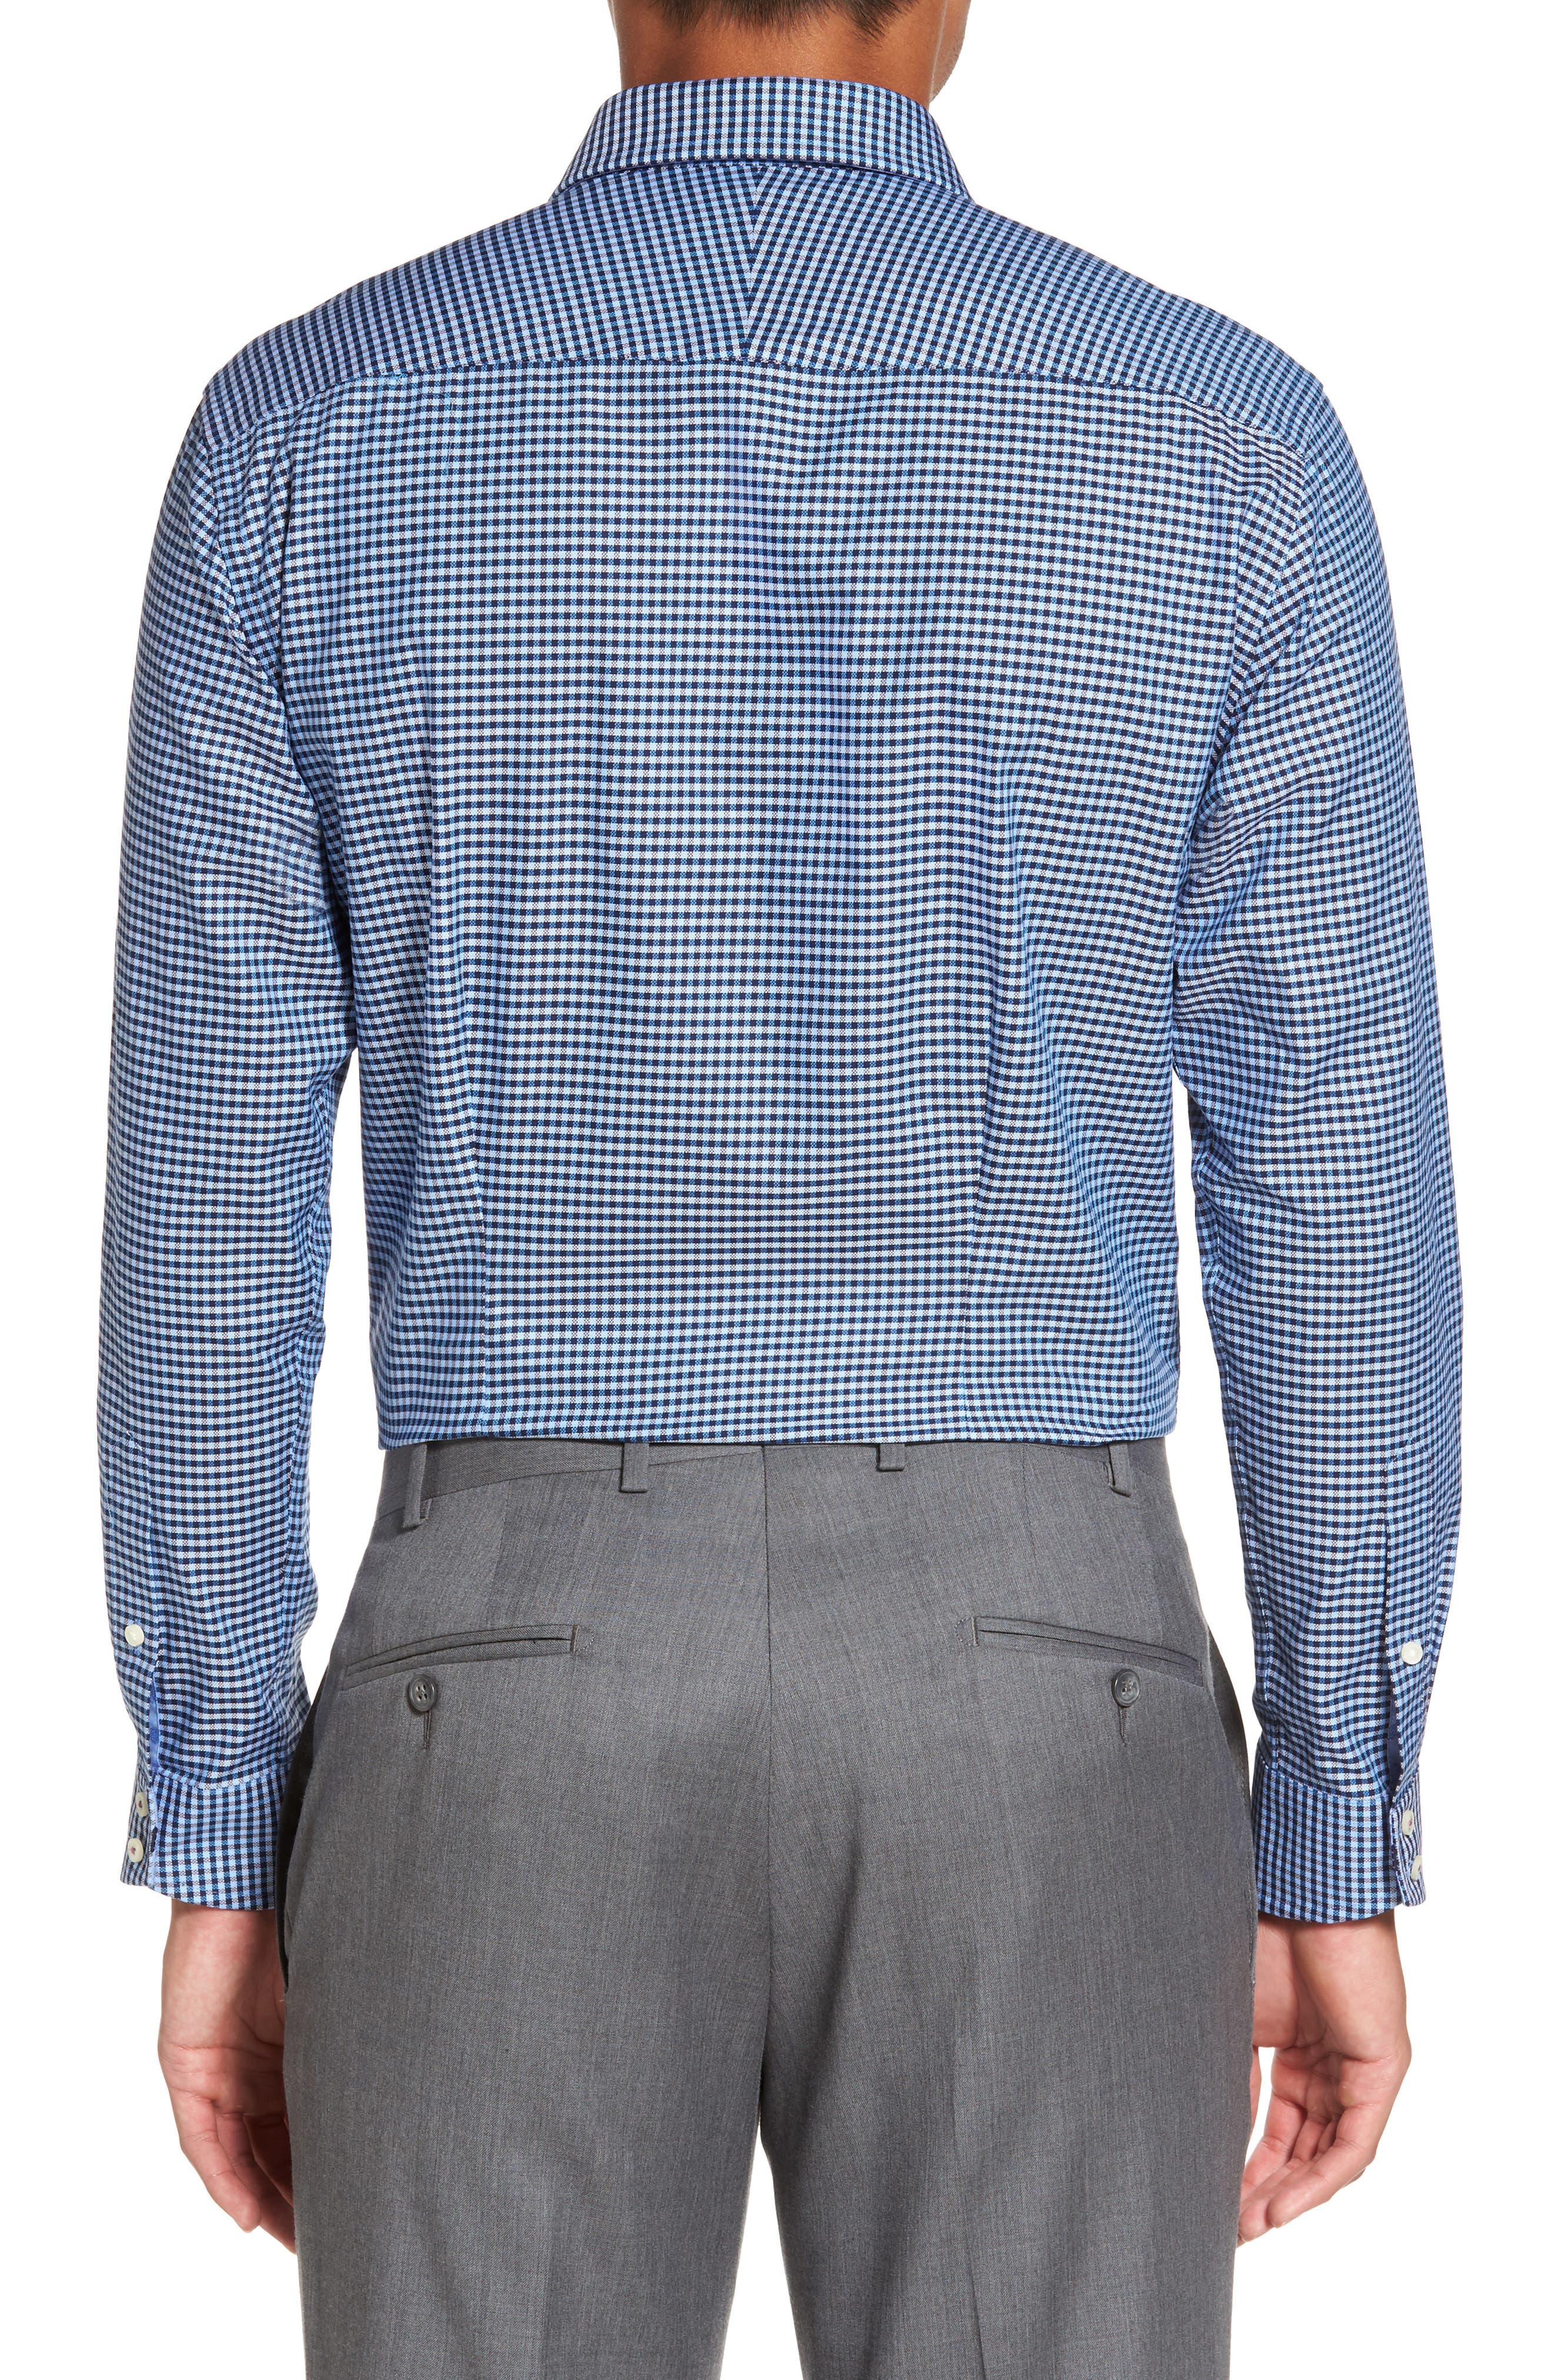 Endurance Sterling Trim Fit Dress Shirt,                             Alternate thumbnail 3, color,